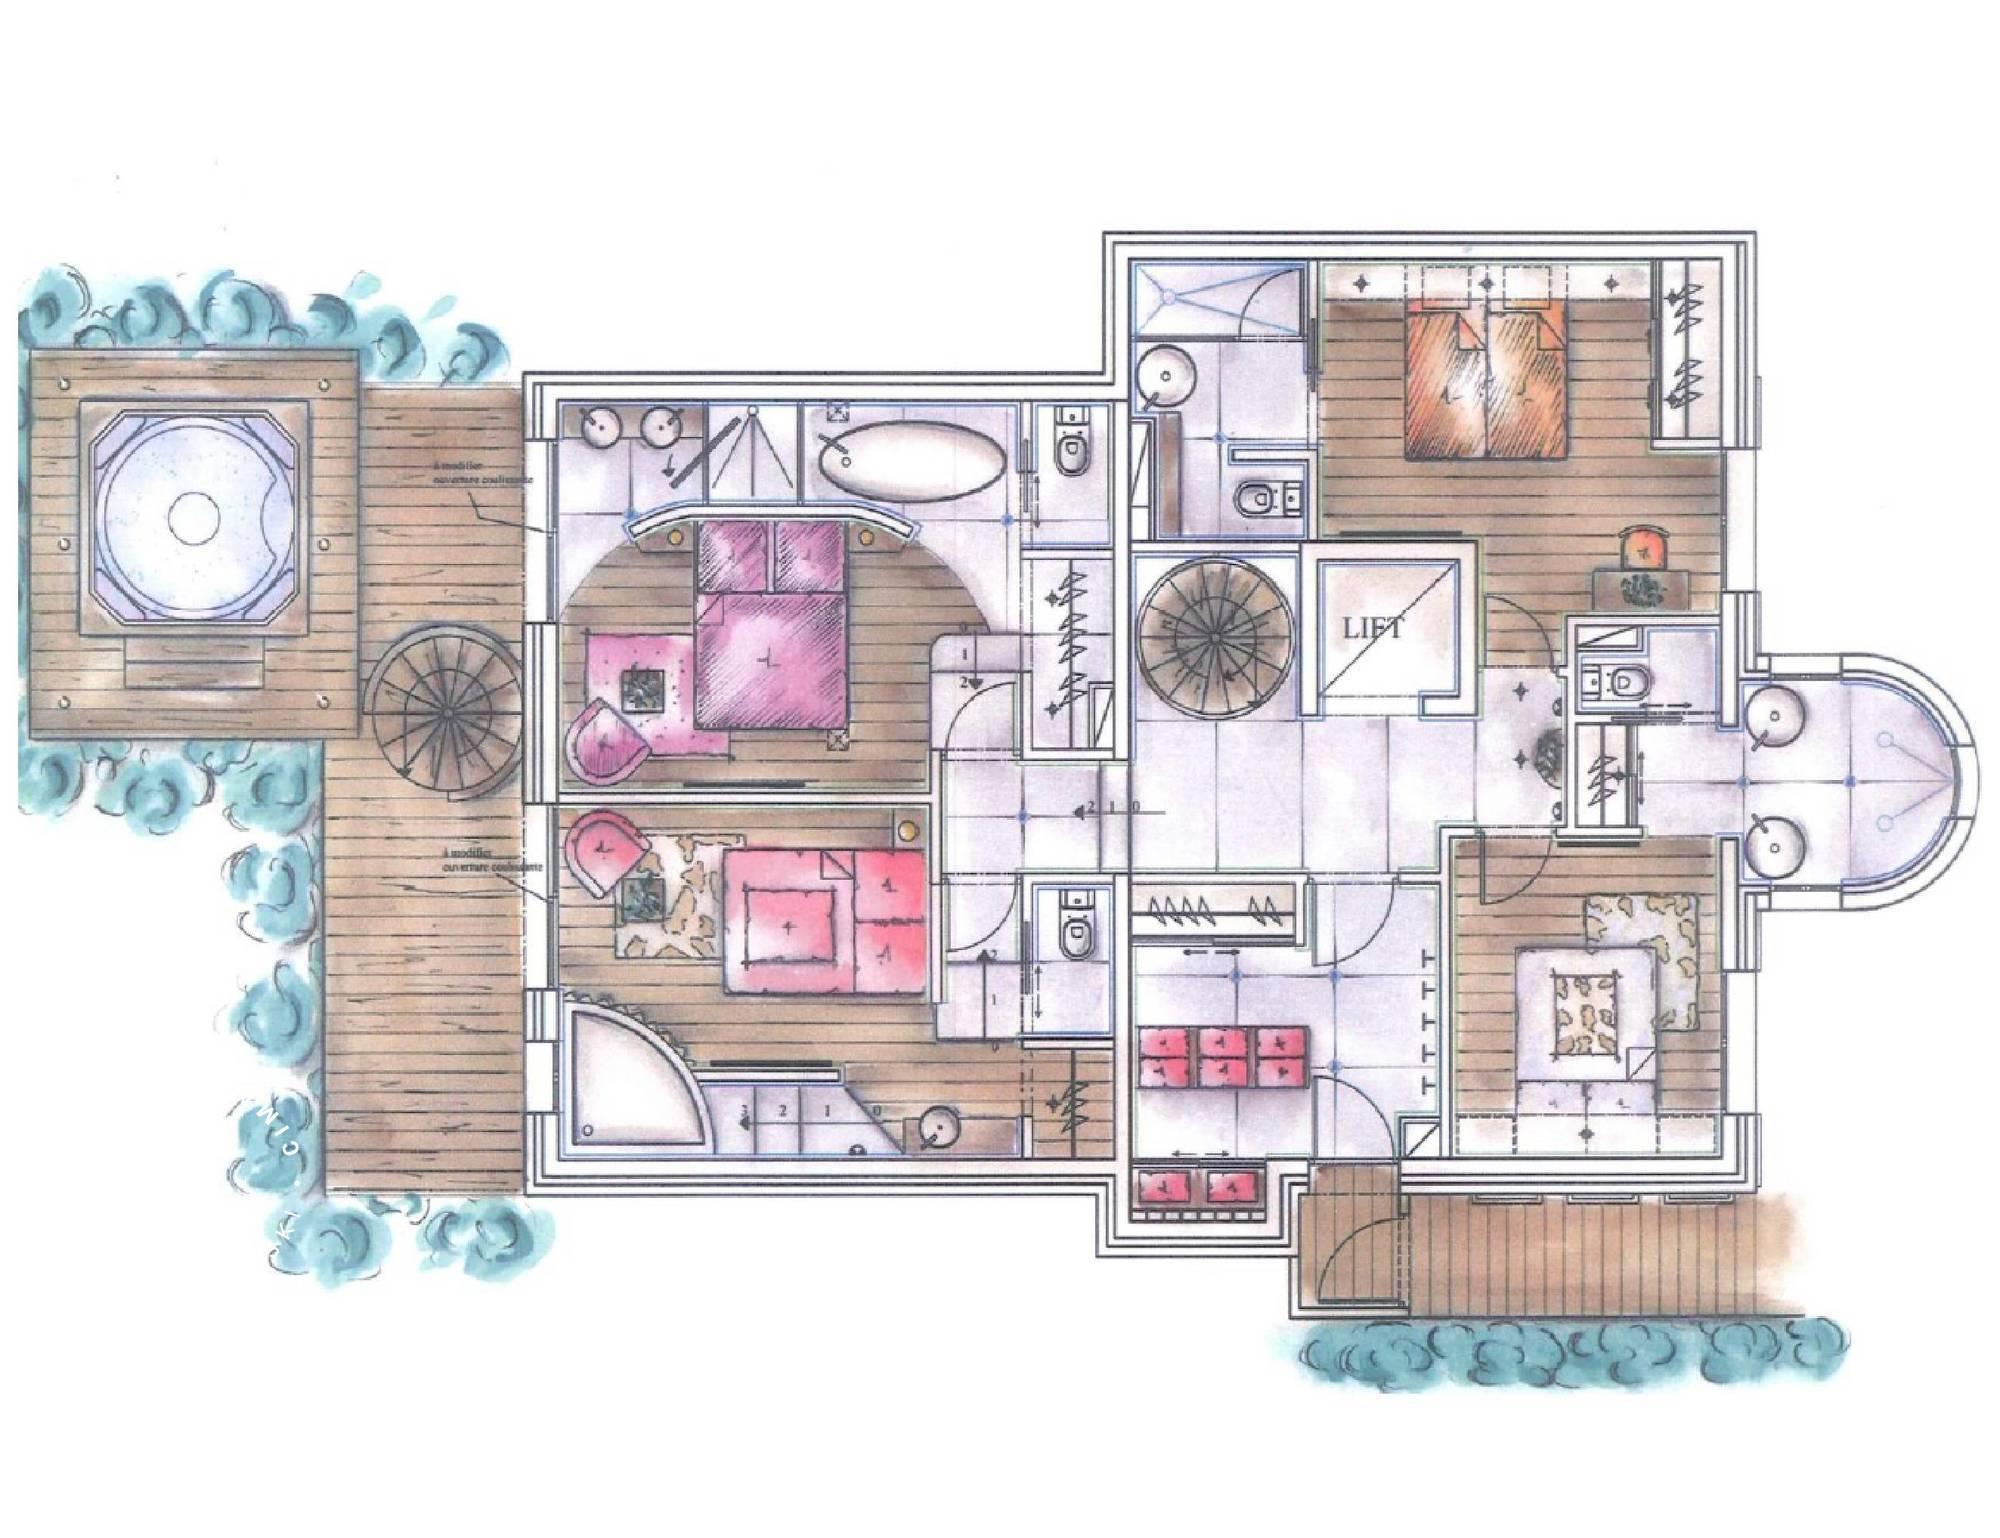 Chalet Eglantier Courchevel Floor Plan 2